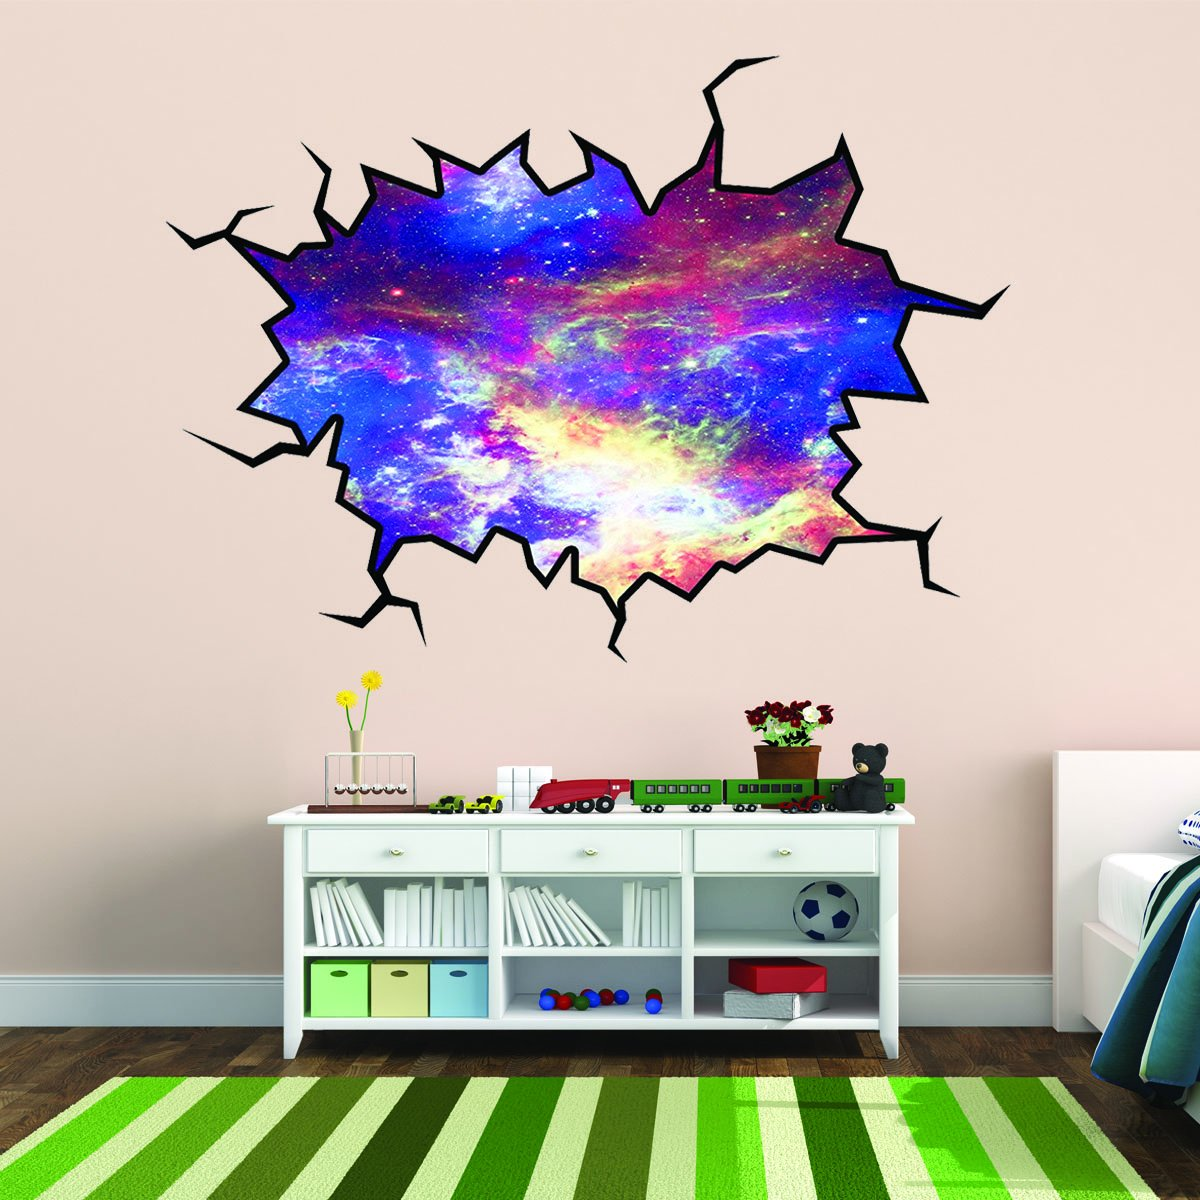 Hole in the Wall Decal